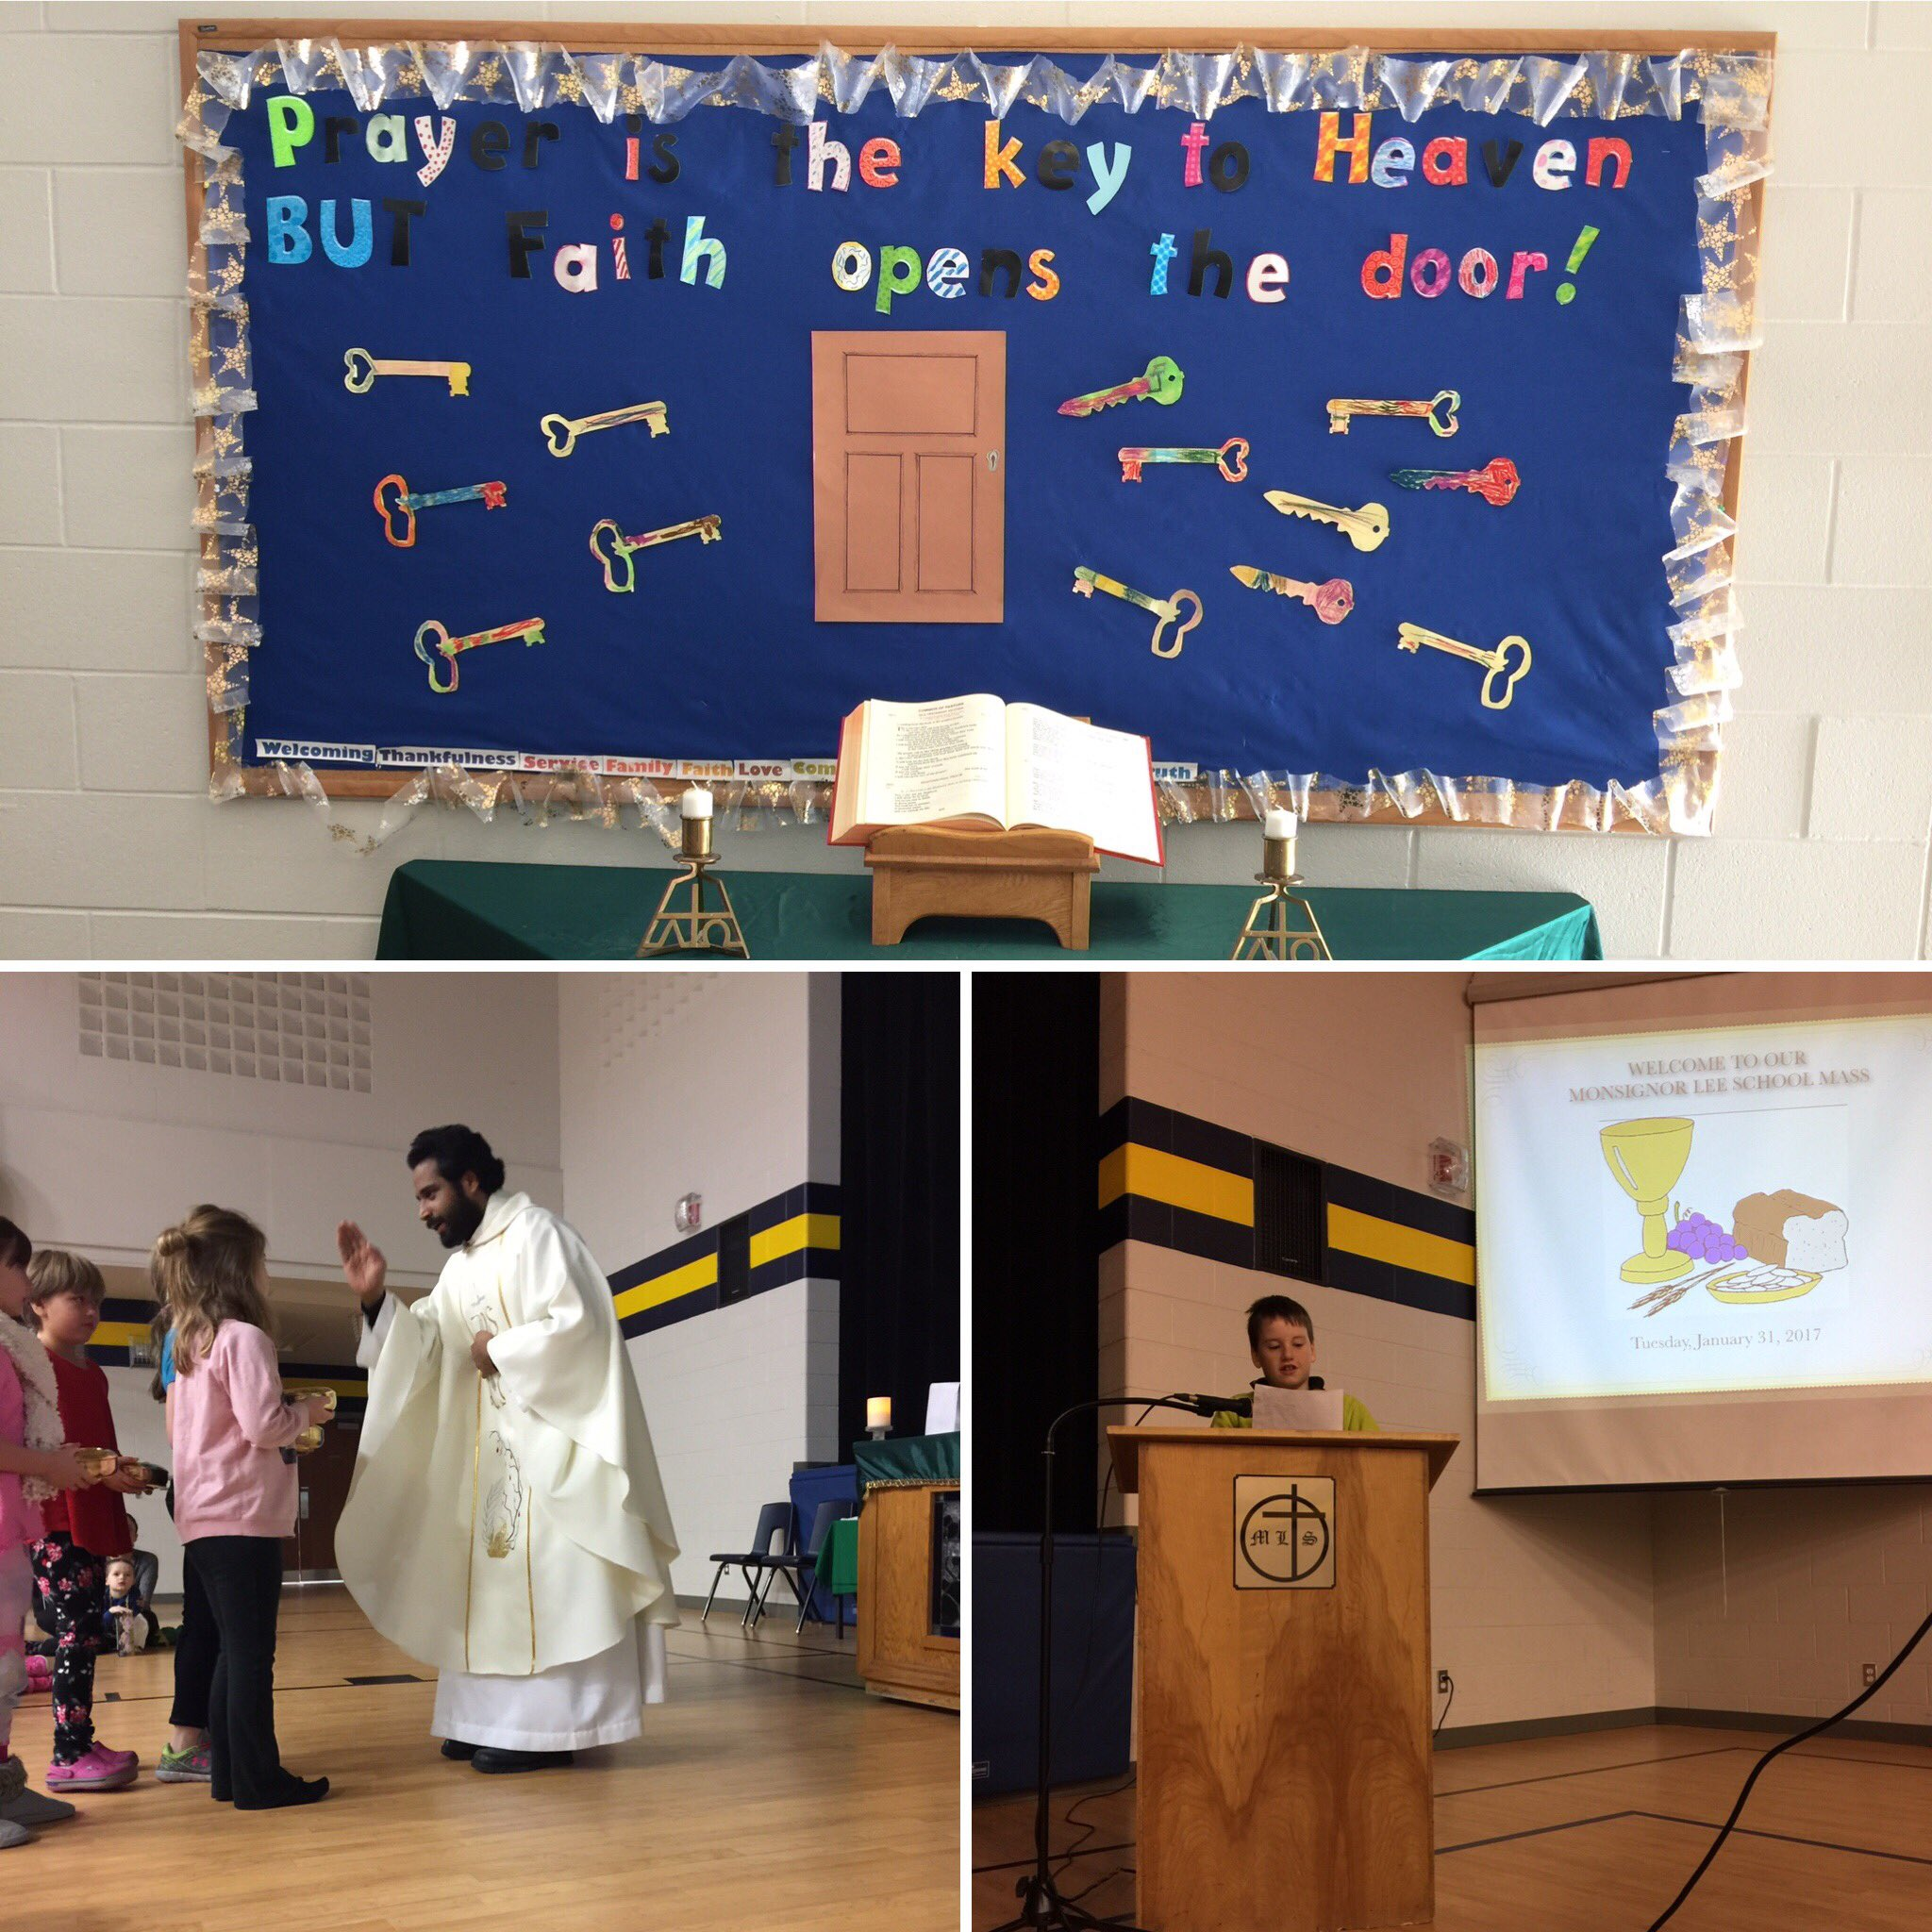 A beautiful morning of celebrating our faith at MLE. Thank you Fr GEORGE and Mr.T's Gr. 3/4 class #WWJD @SMCDSB https://t.co/aW0tdFcxxv